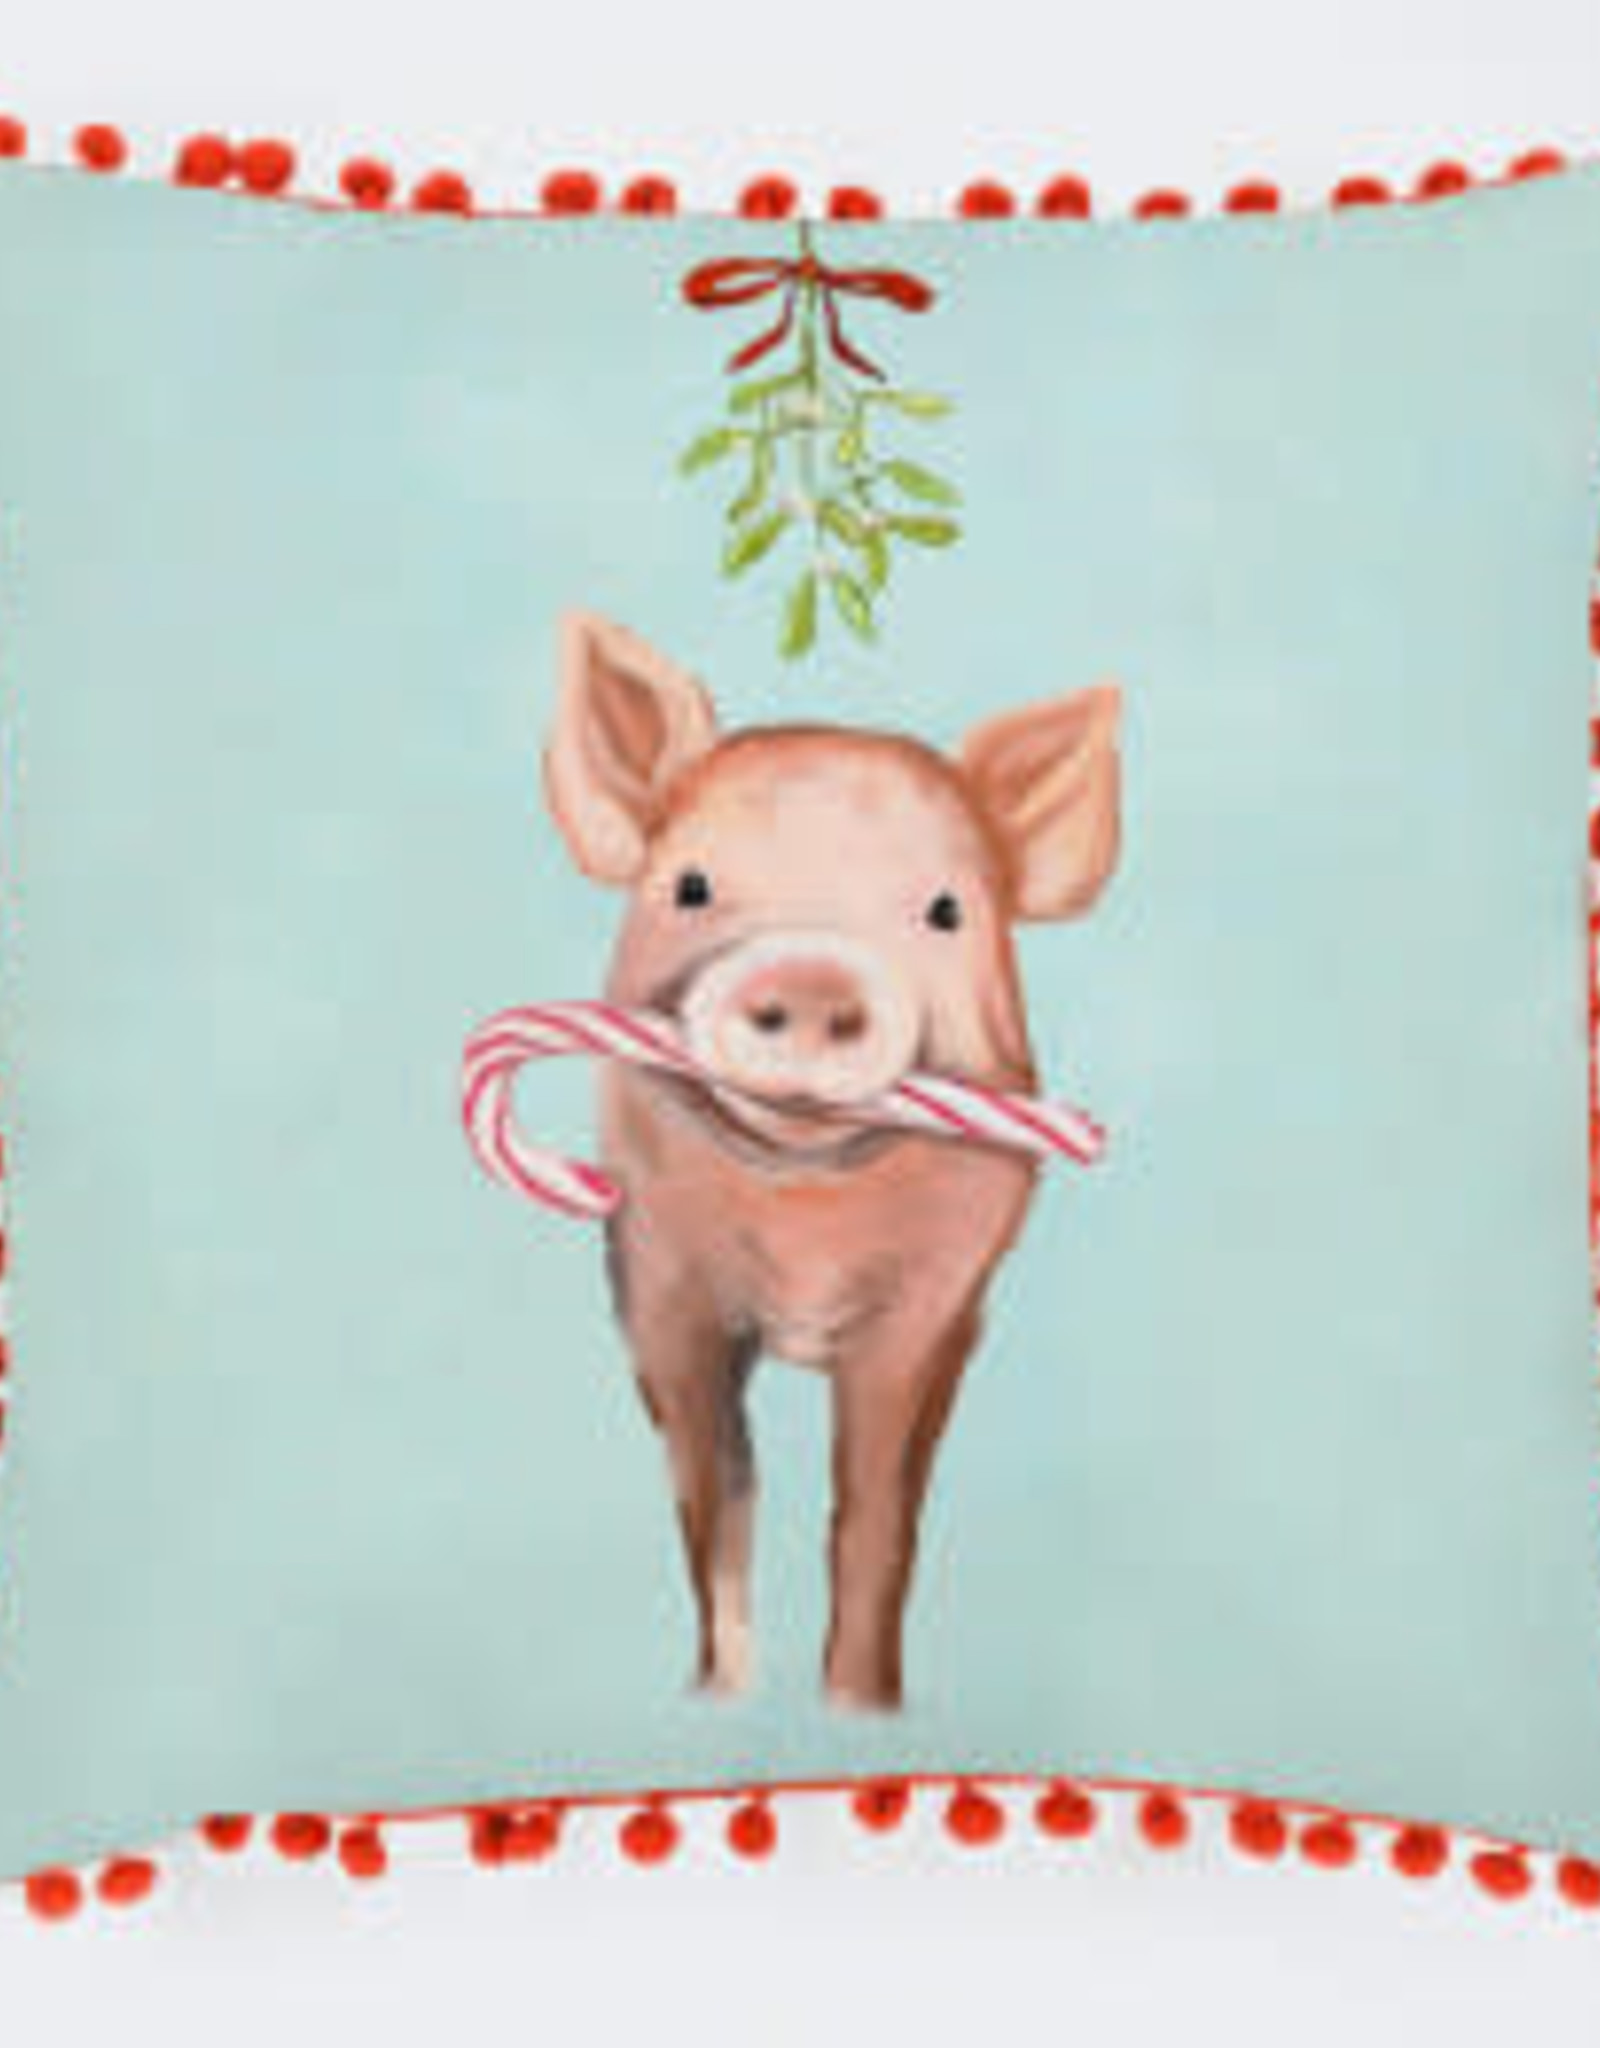 Greenbox Art Holiday - Festive Pig Pillow 20 x 20